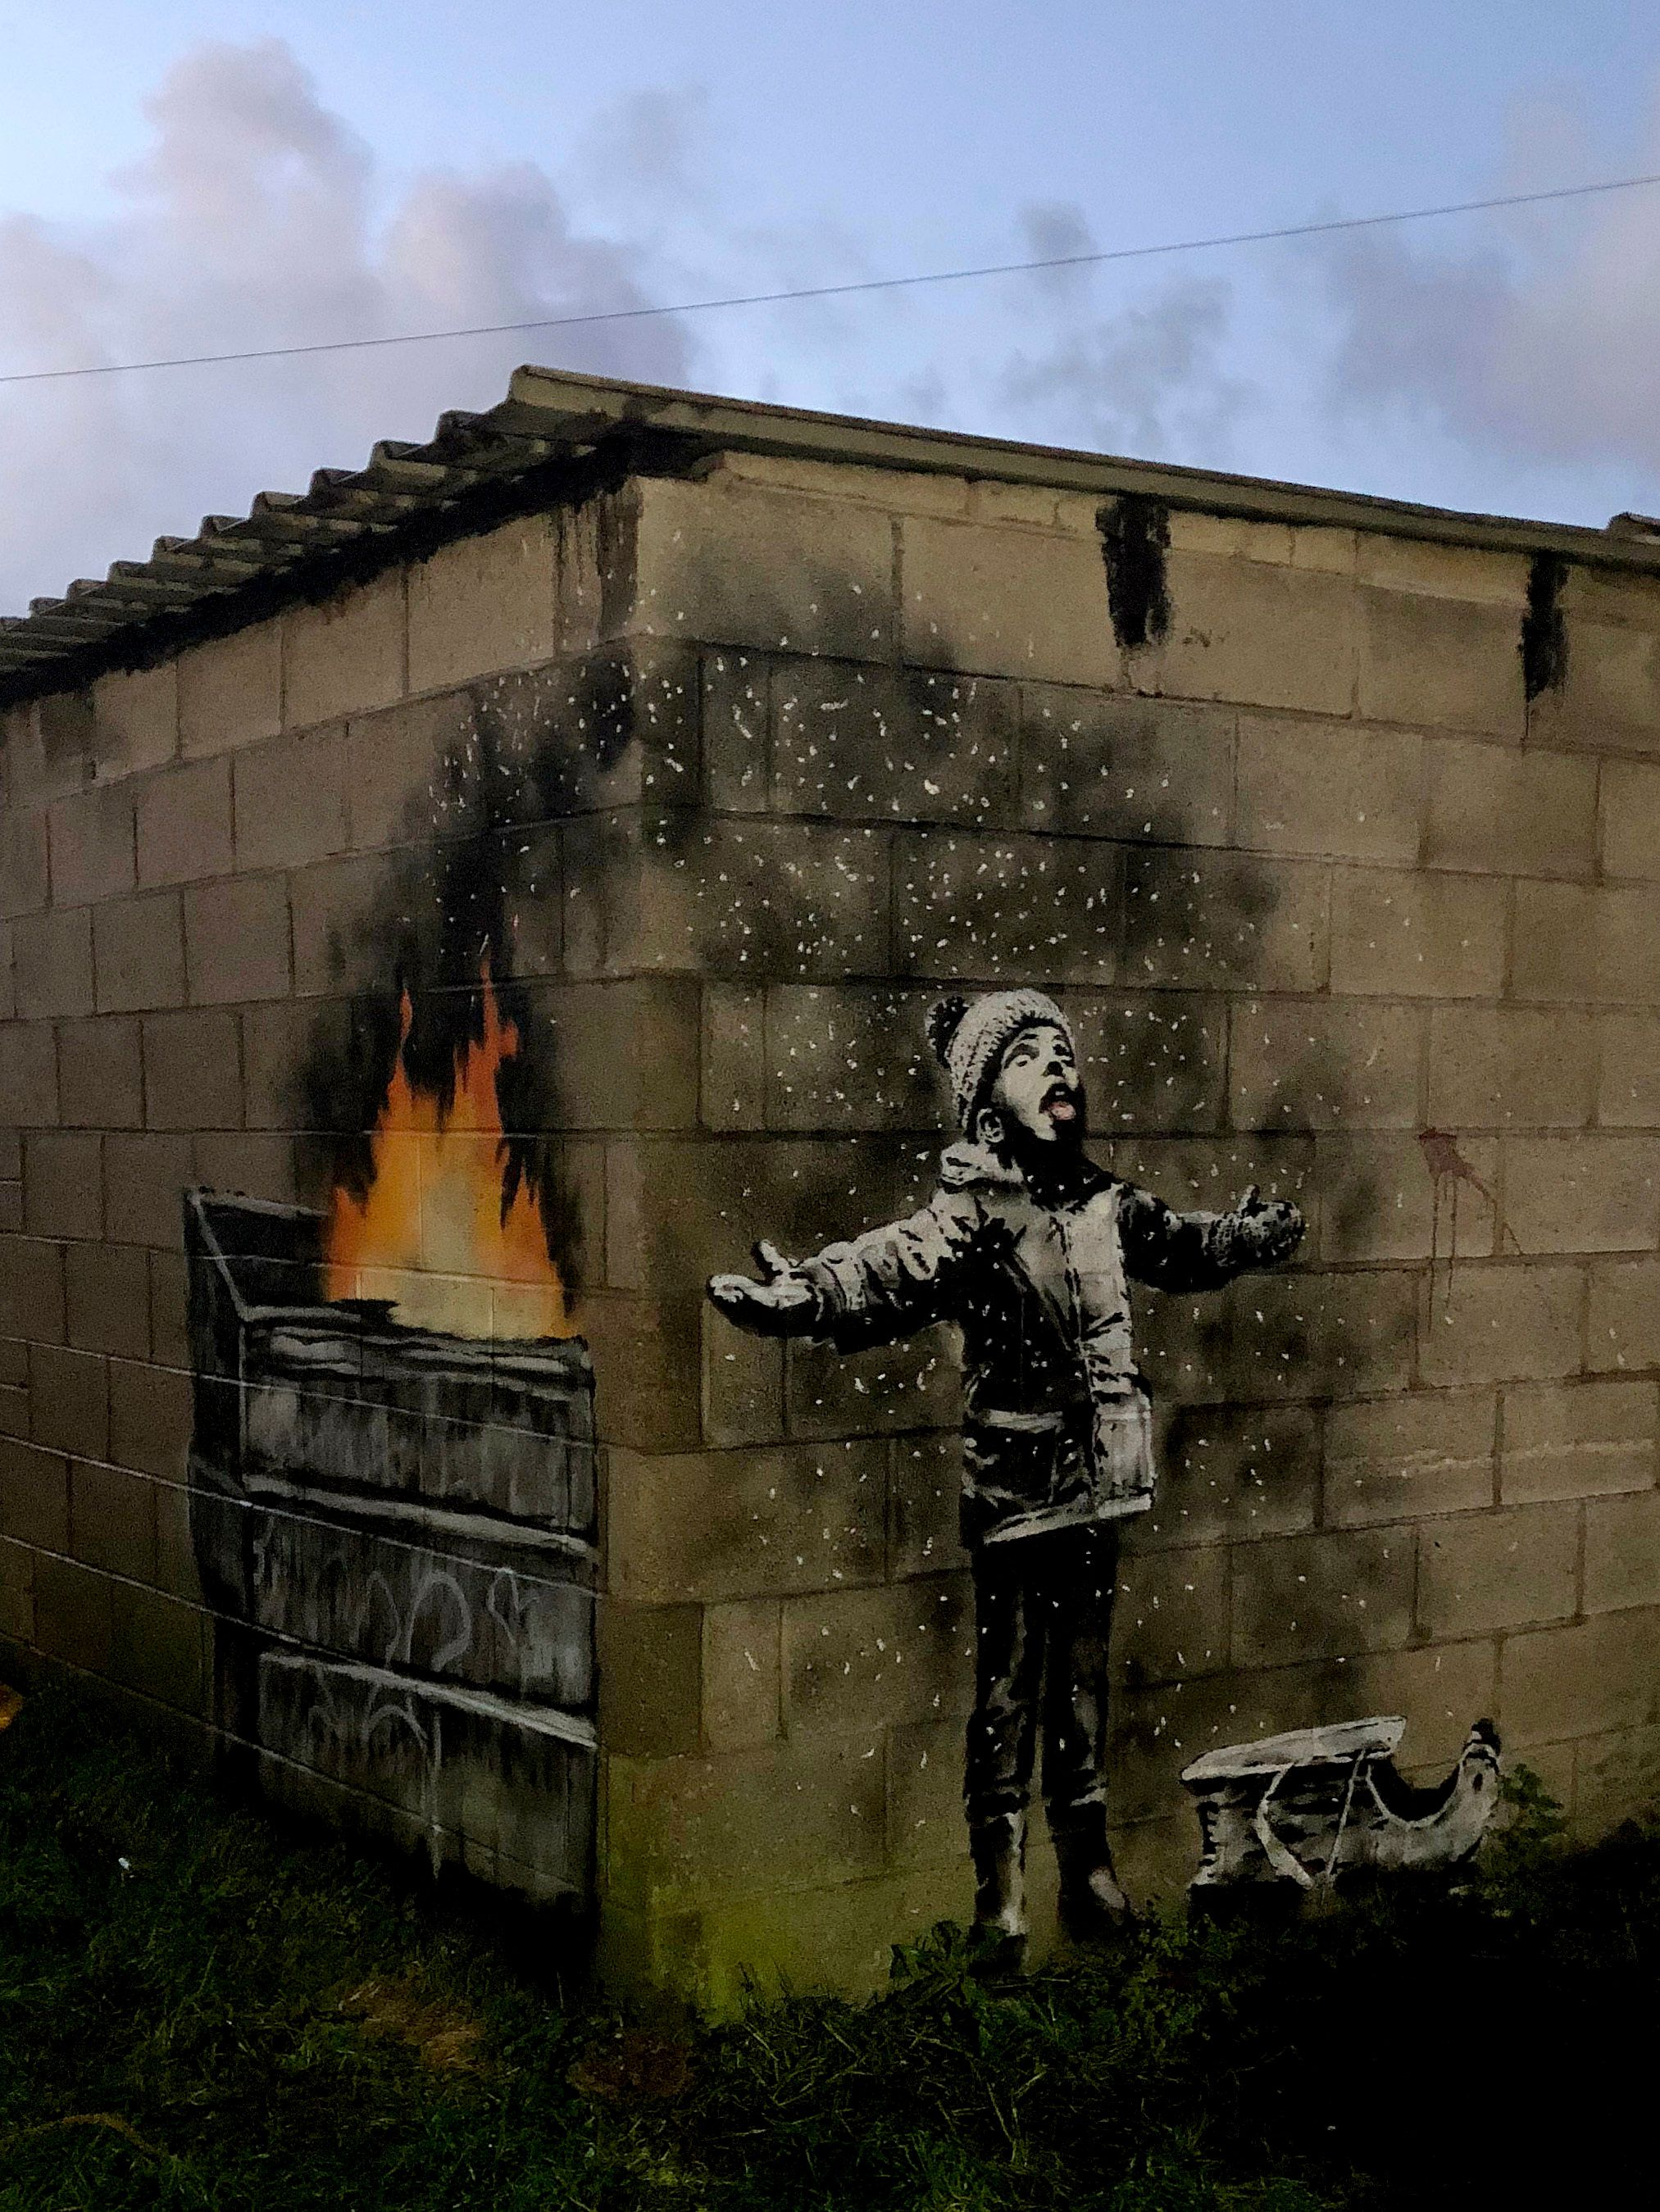 The full mural by Banksy reveals that the child is standing in ash from a dumpster fire.